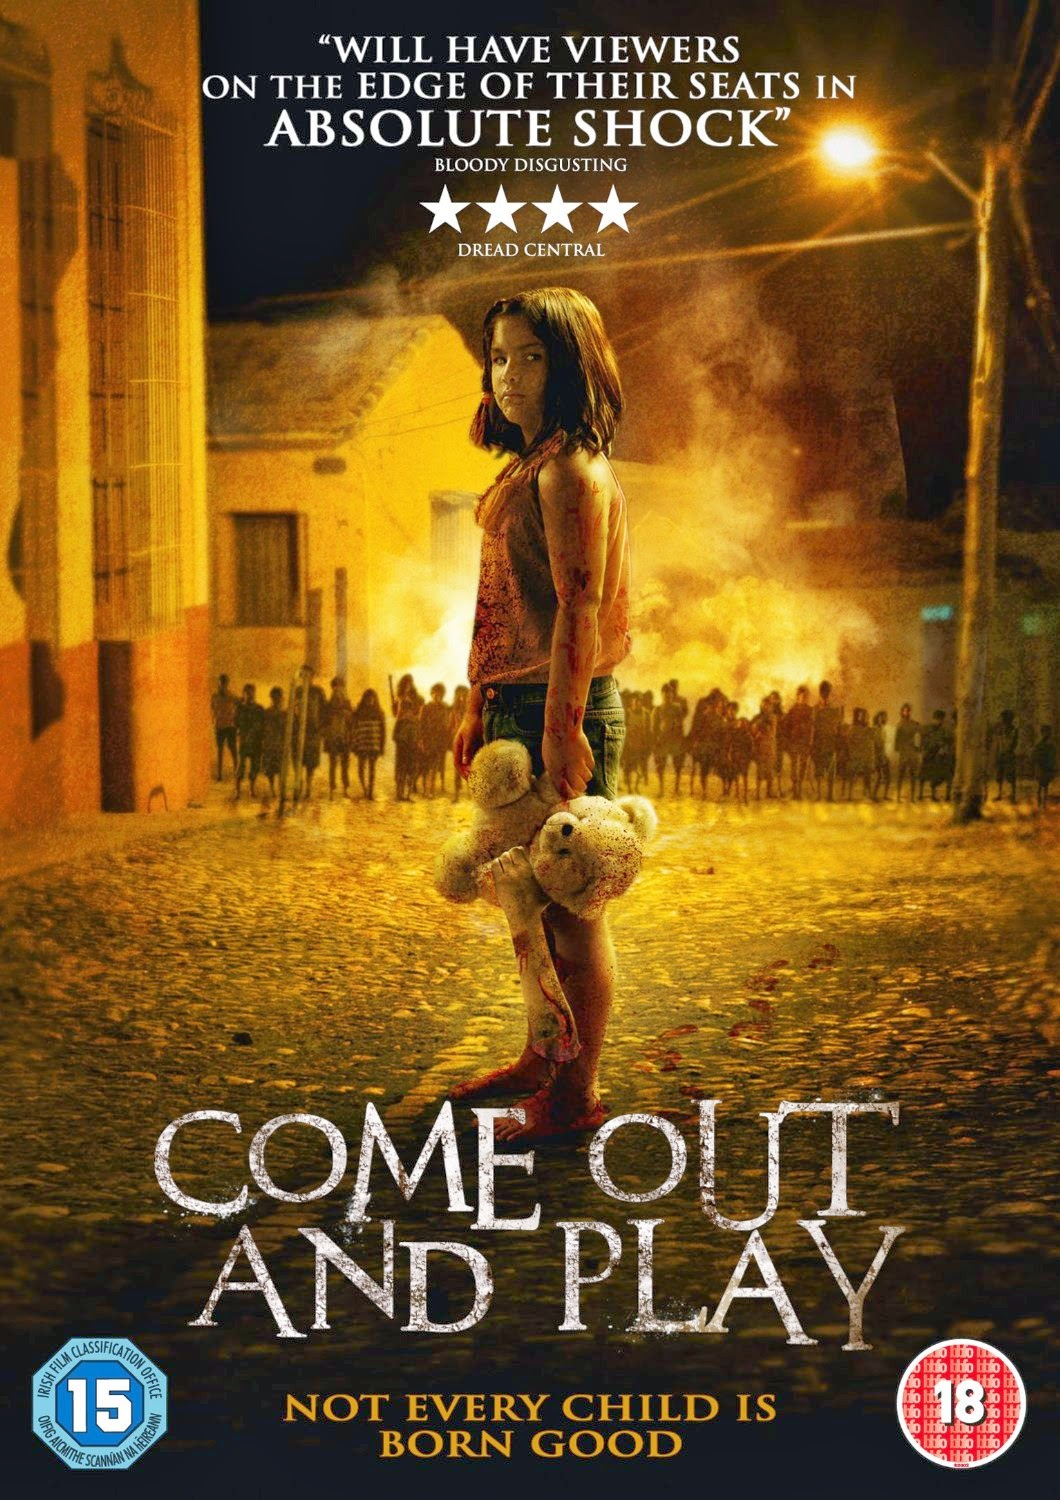 Ra Đây Chơi Nào - Come Out And Play (2012) Poster